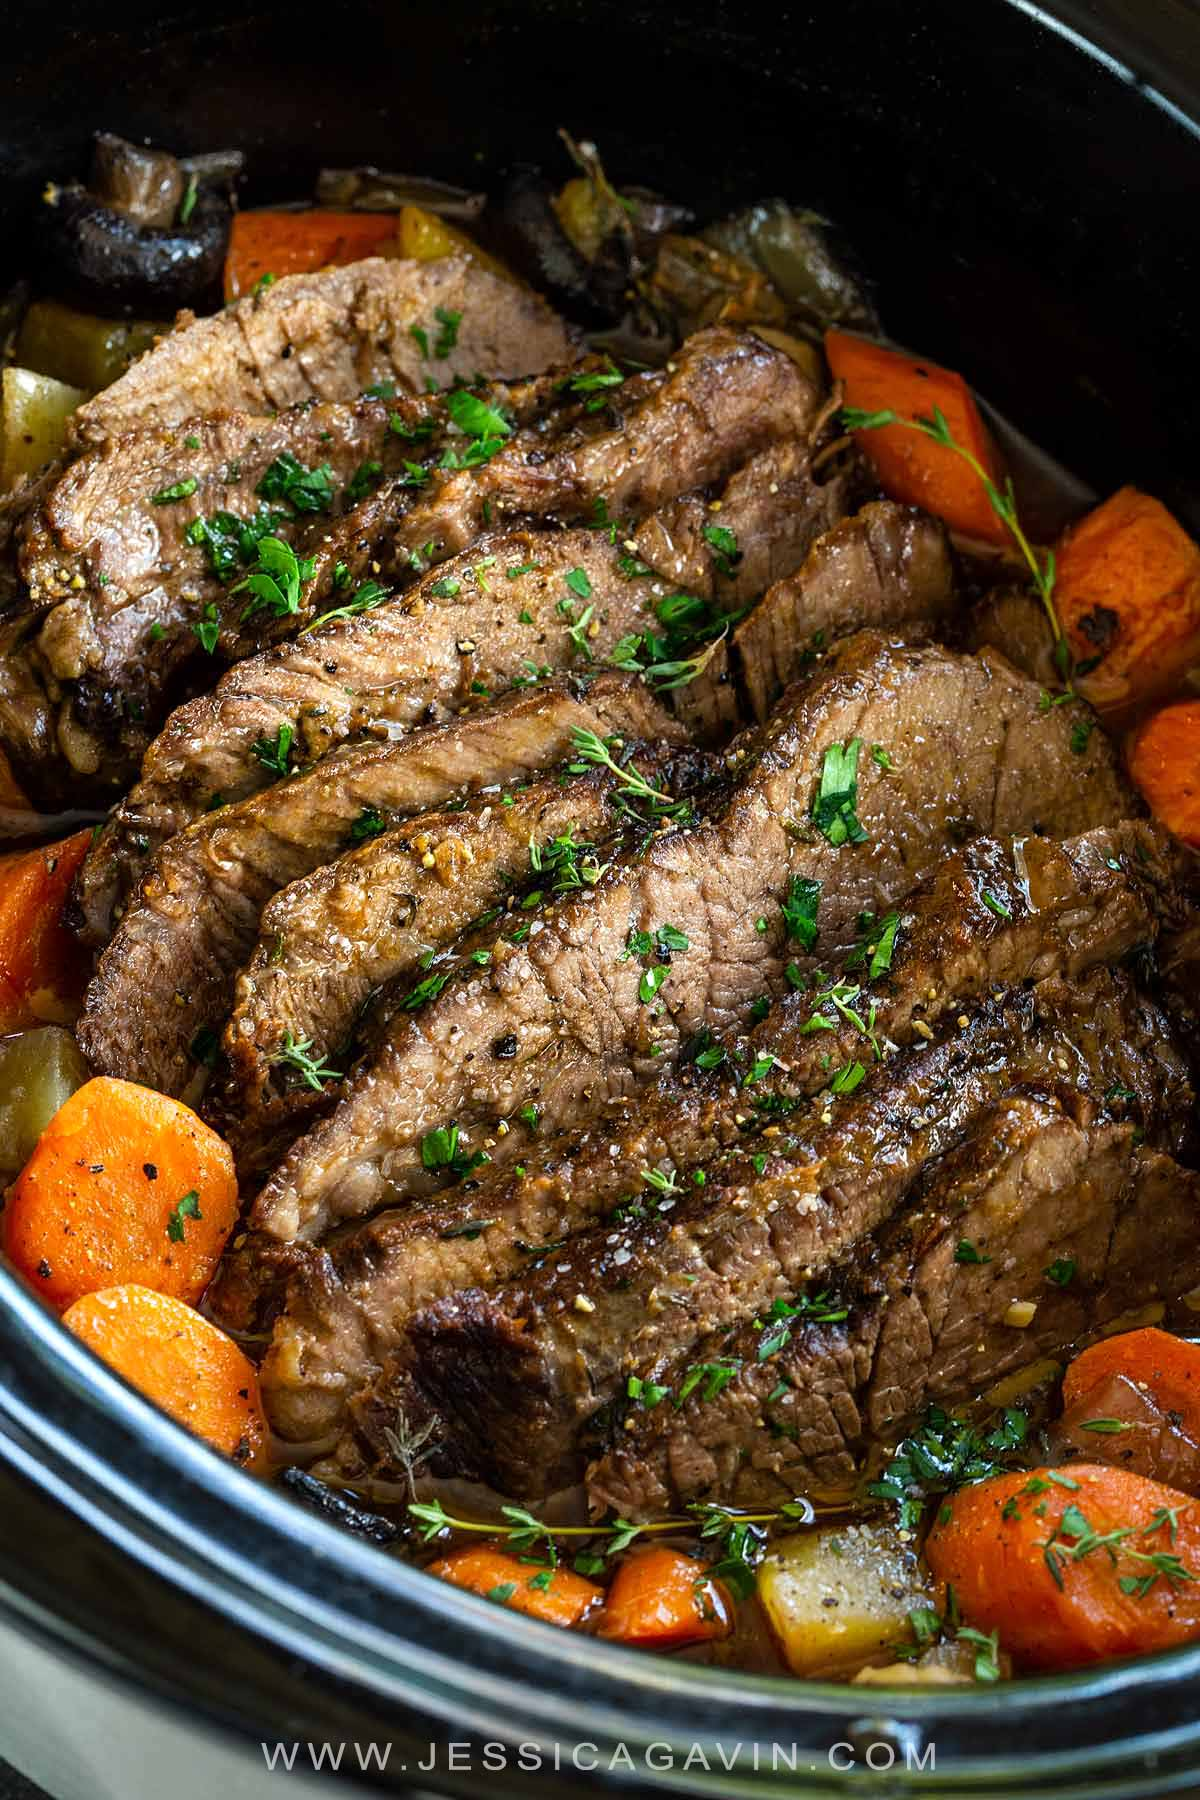 Slow cooker pot roast recipe that browns the beef first to enhance flavor then potatoes, onion, and carrots cook alongside the meat for a complete dinner. #potroast #slowcooker #crockpot #beefrecipe